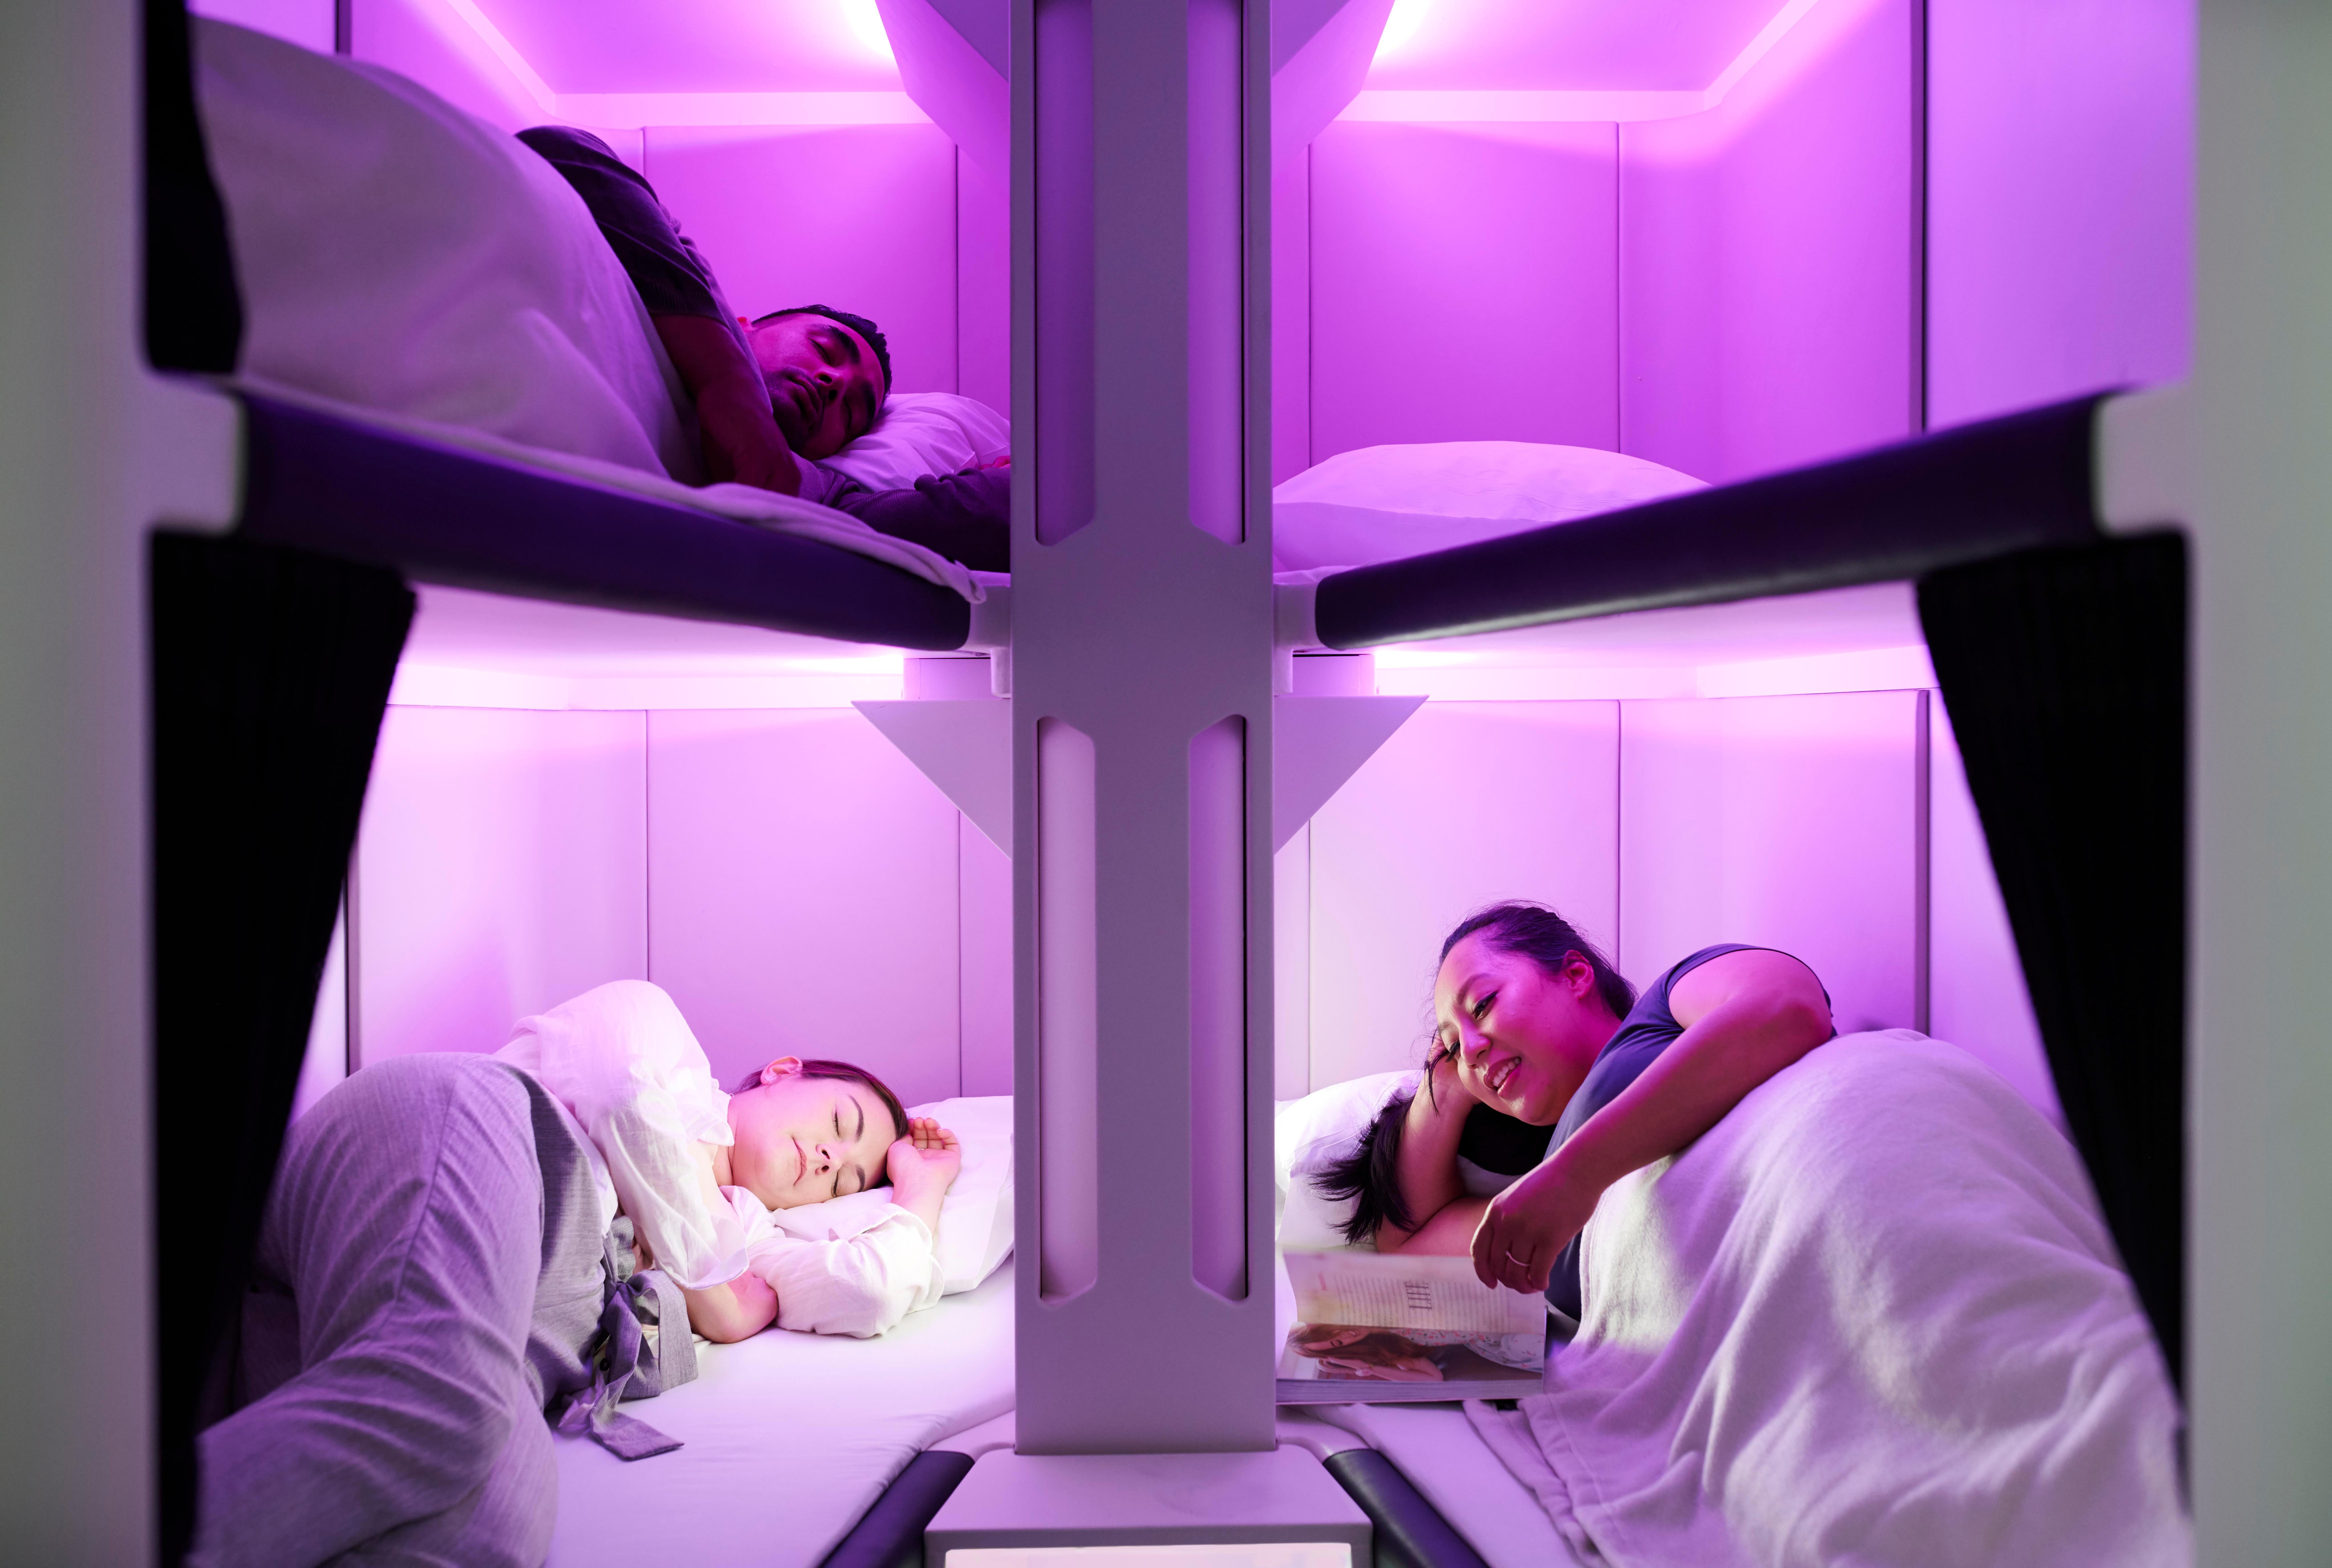 Lie-flat beds in economy class: Air New Zealand unveils bunks for budget travellers